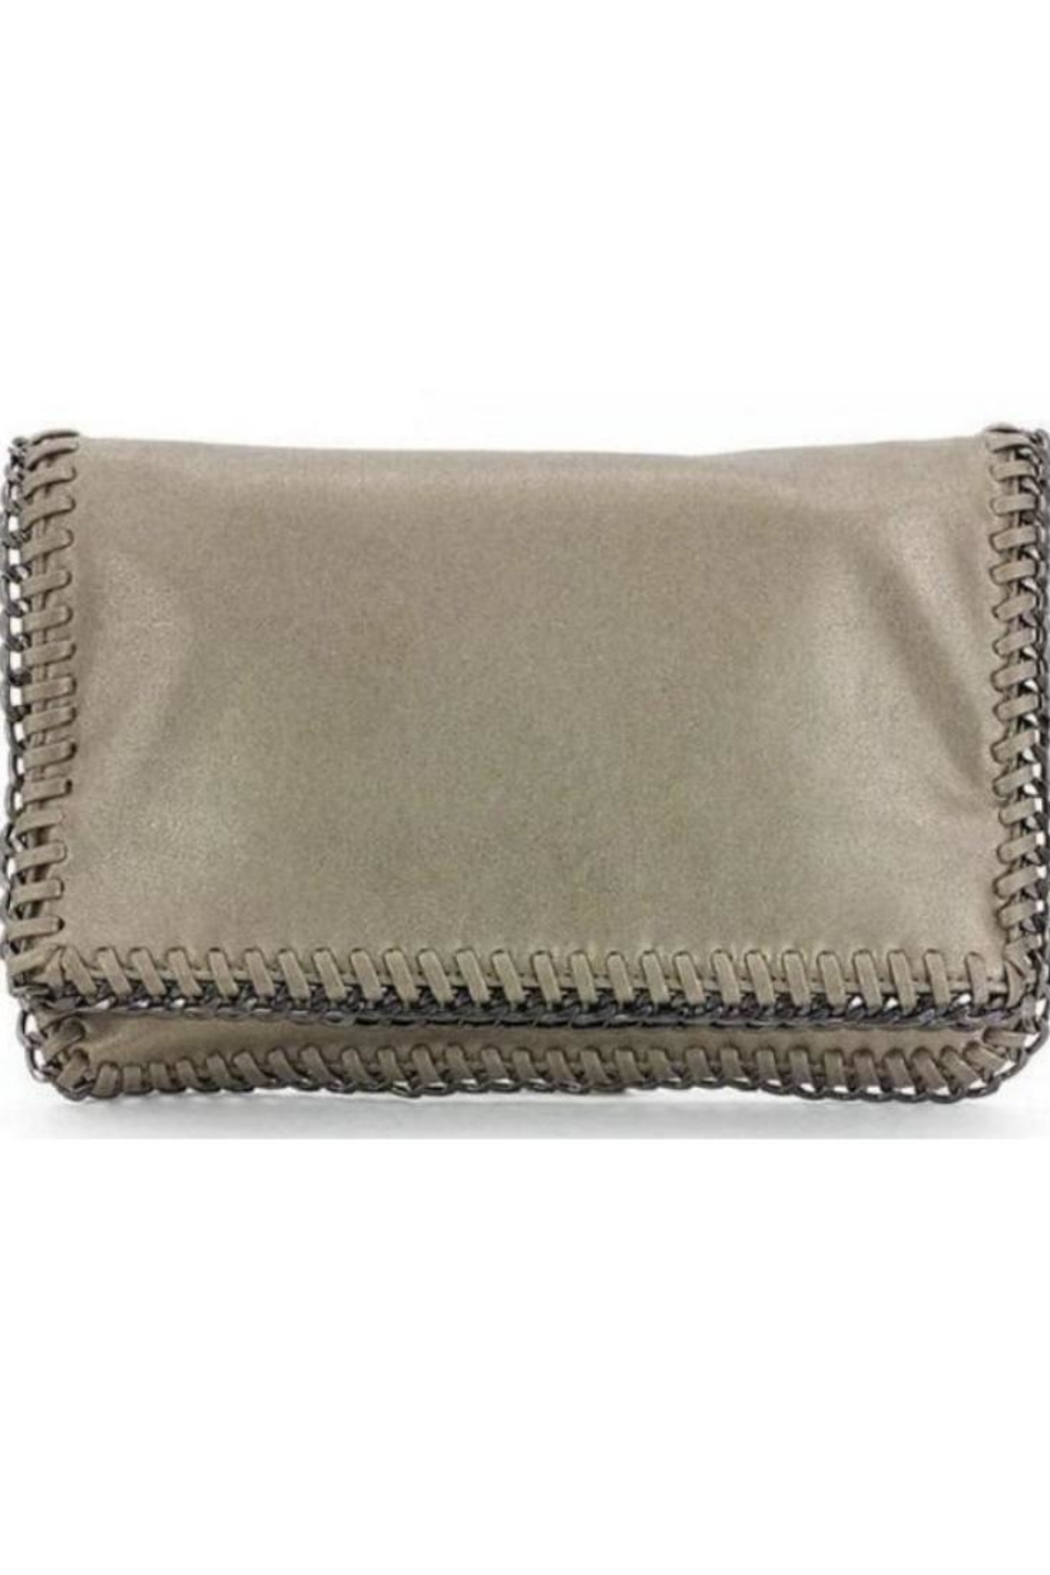 Allie & Chica Gold Chain Clutch - Main Image